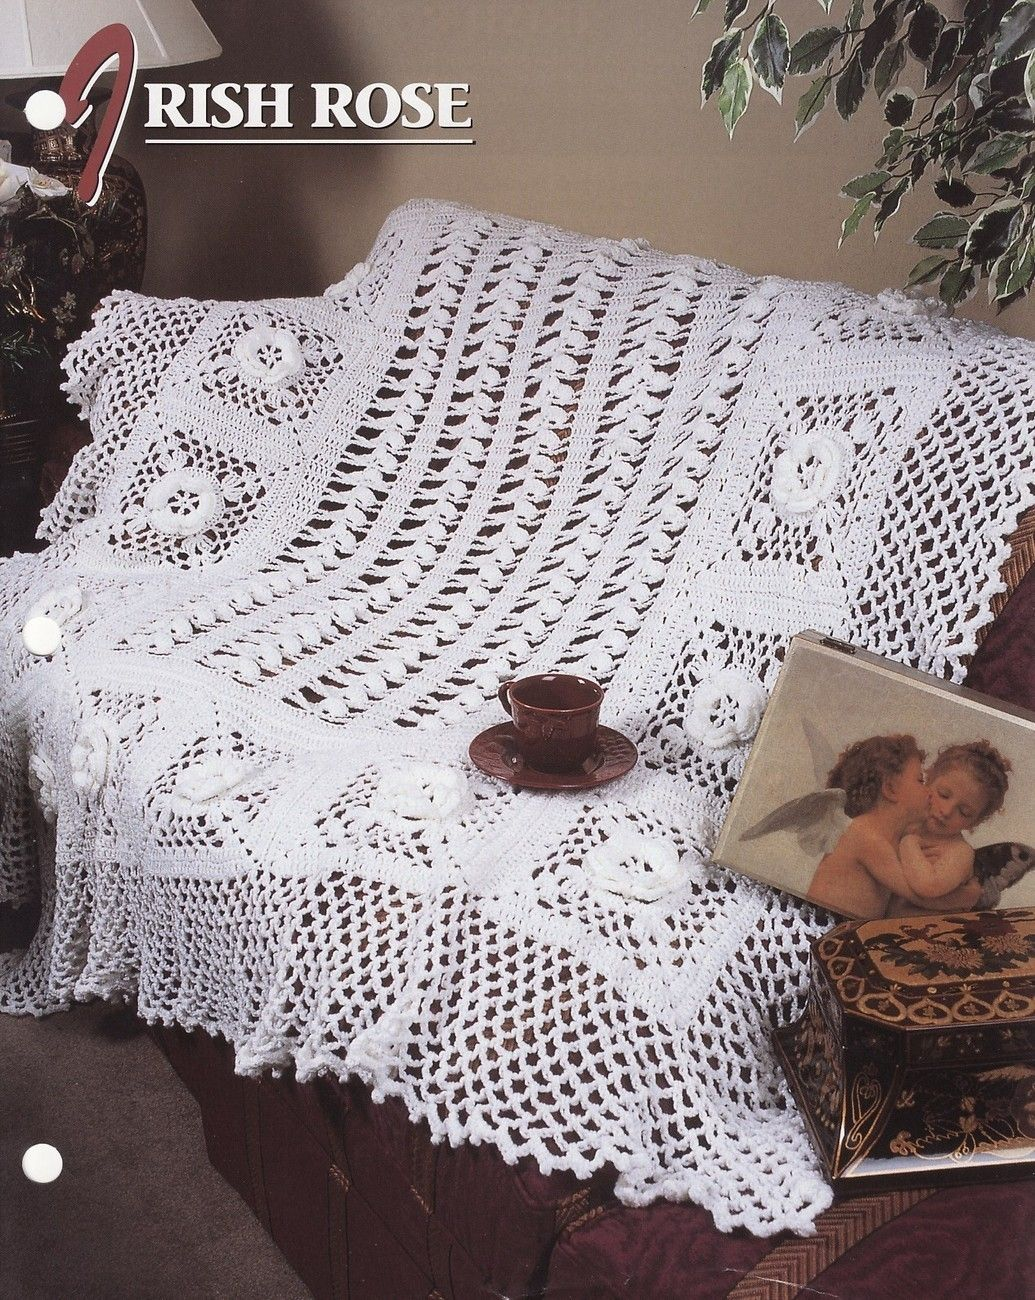 Irish Lace Afghan or Bedspread floral crochet pattern | eBay ...